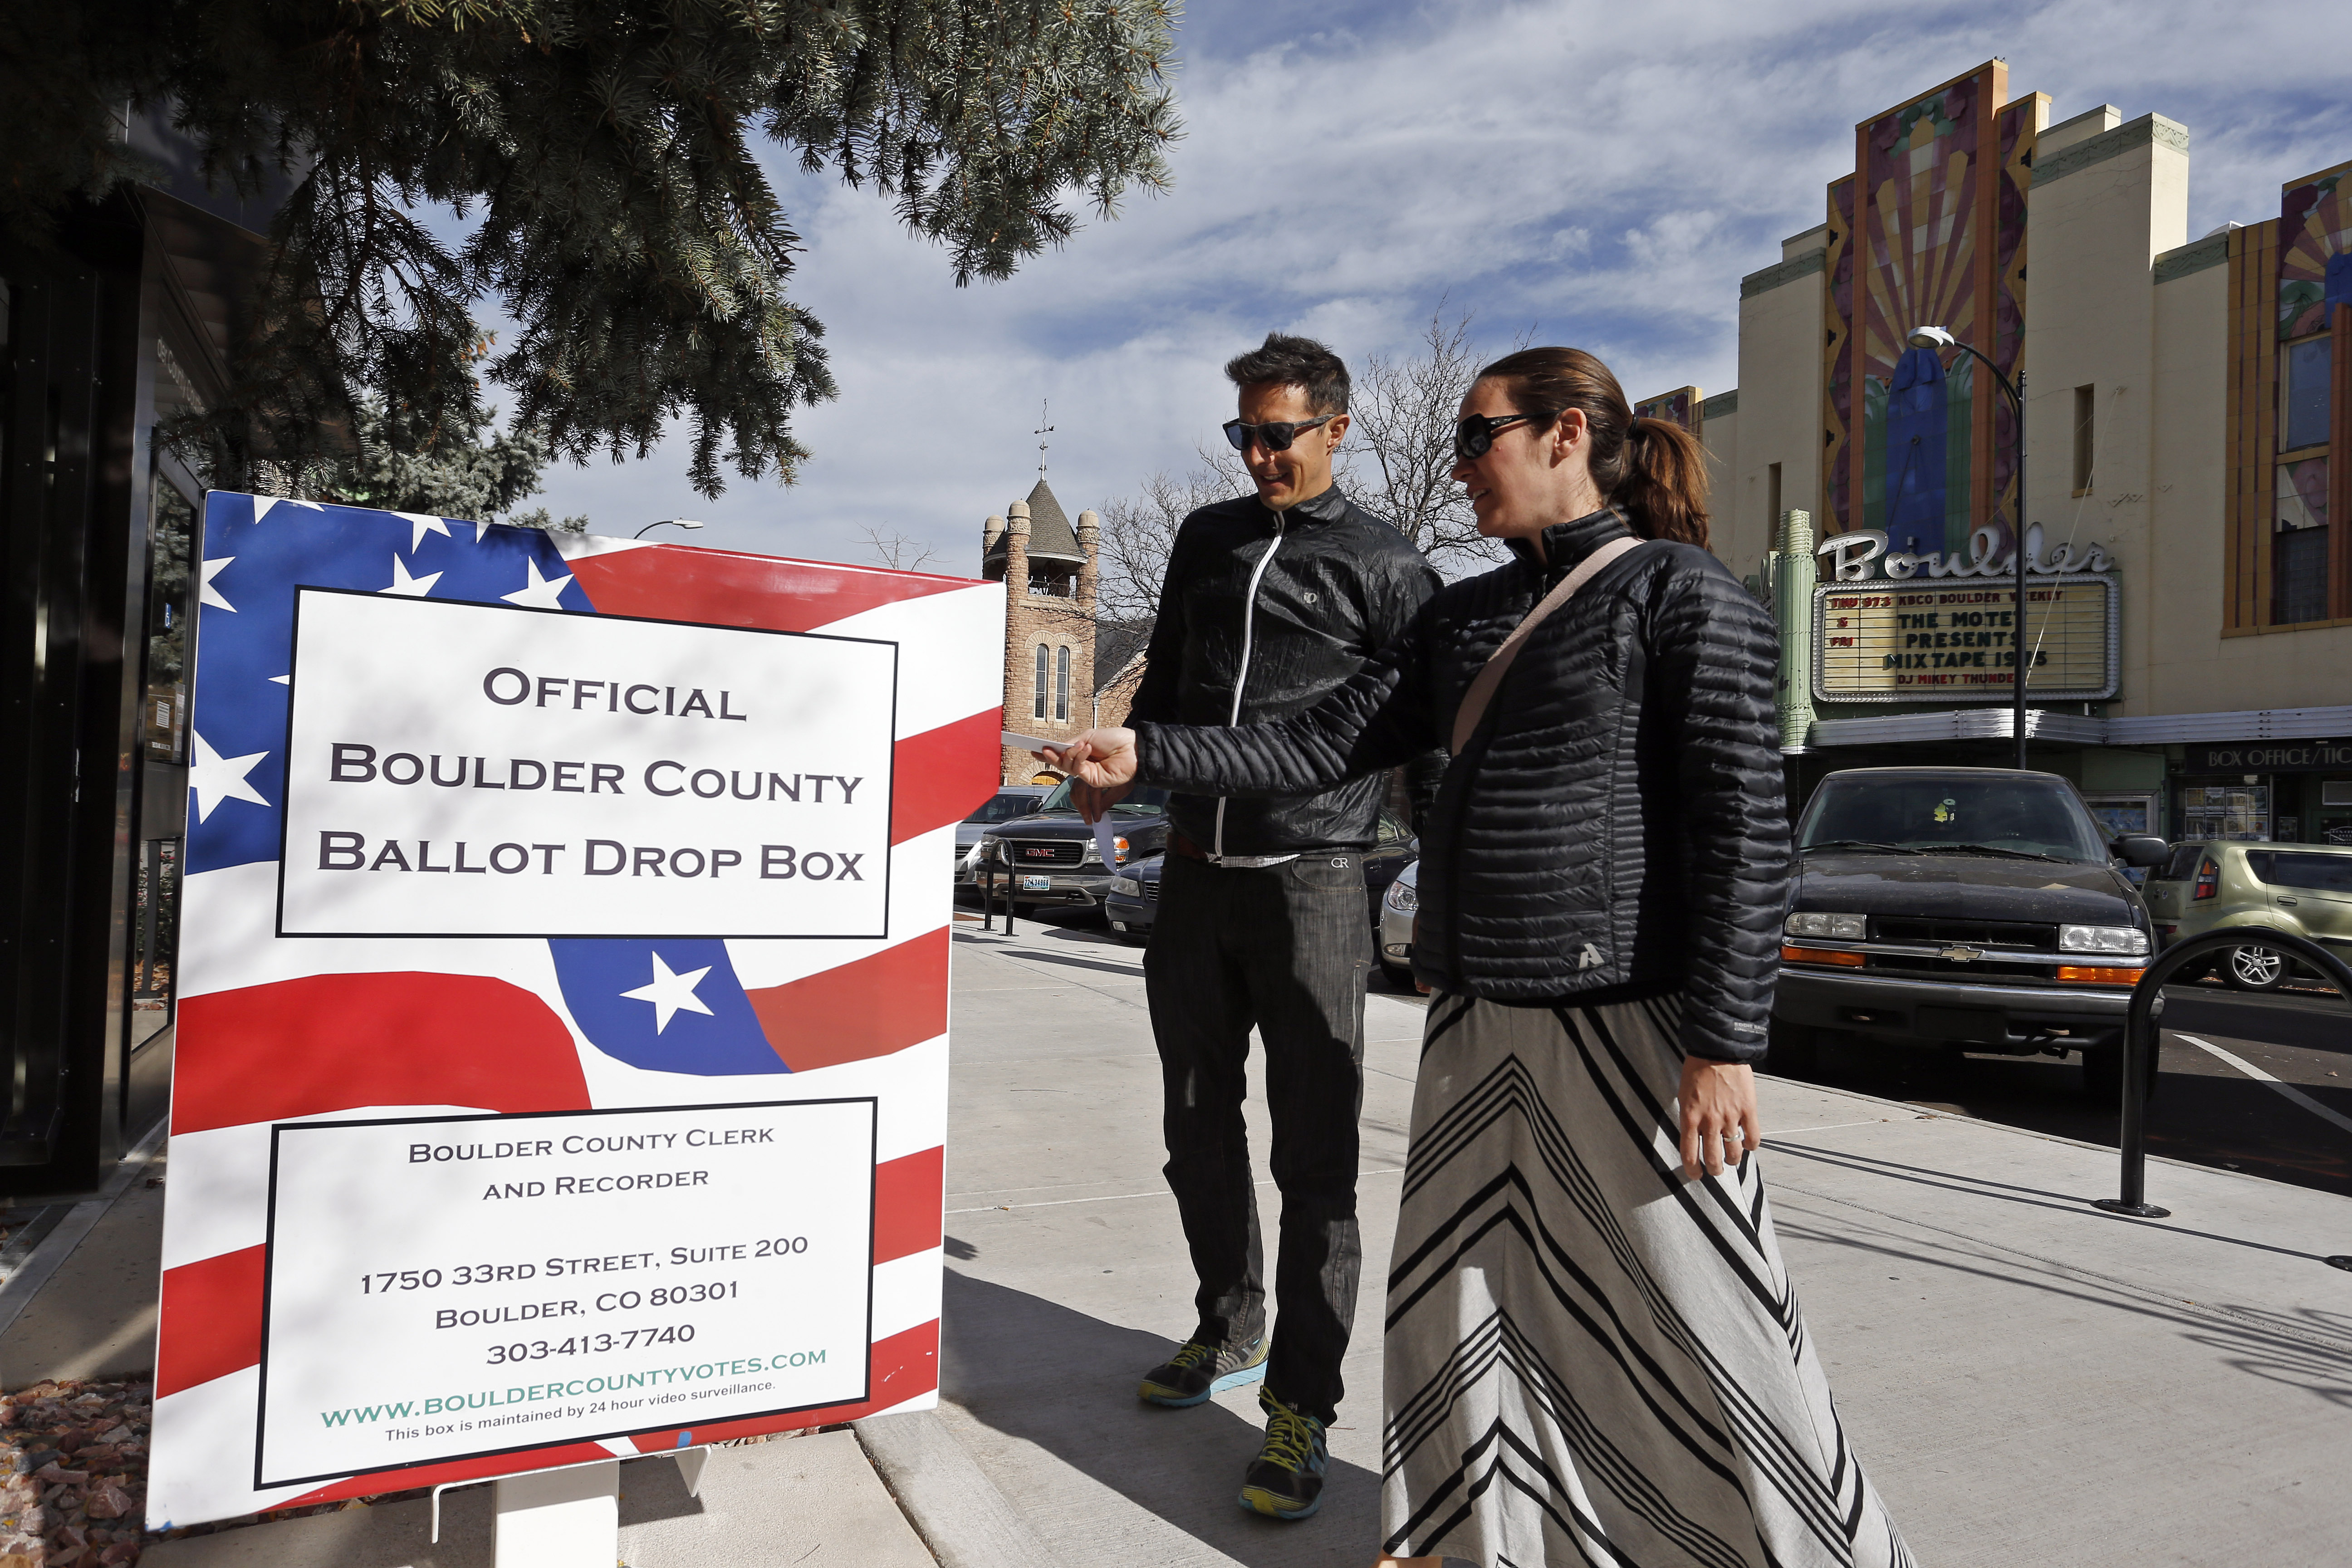 Photo: Voting by mail (AP Photo)